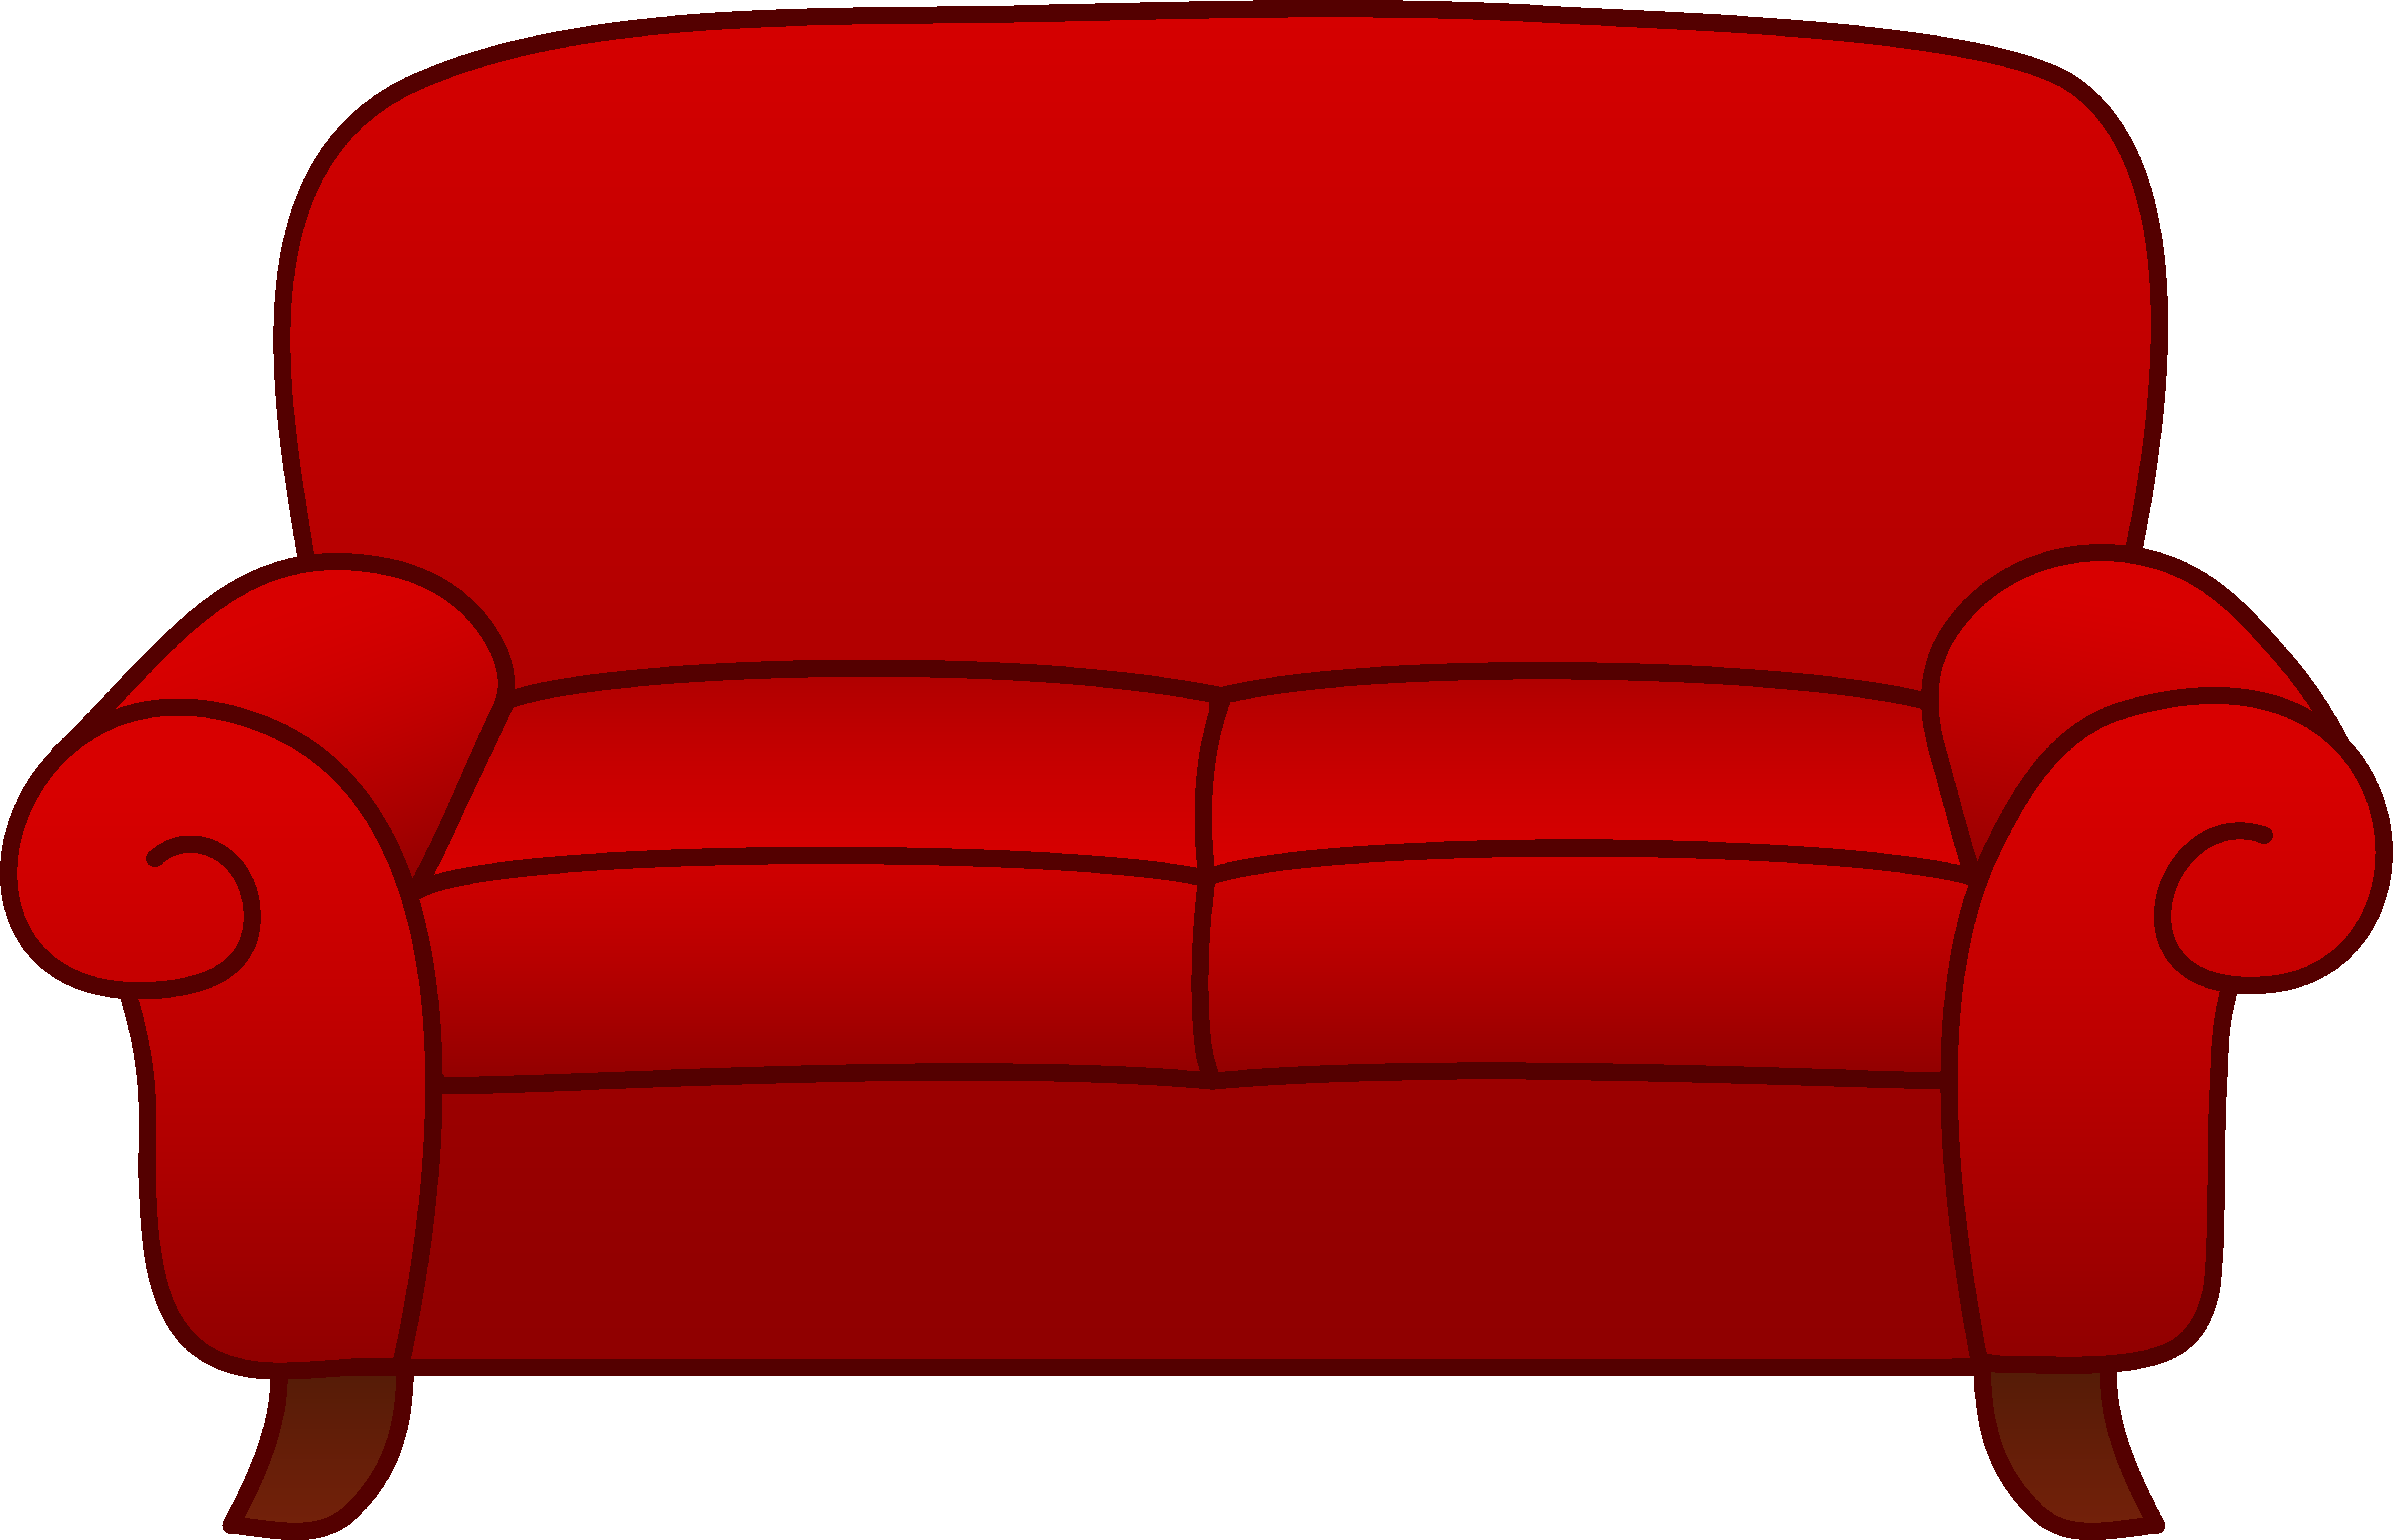 Couch Vector Sofa Back Studio Couch.